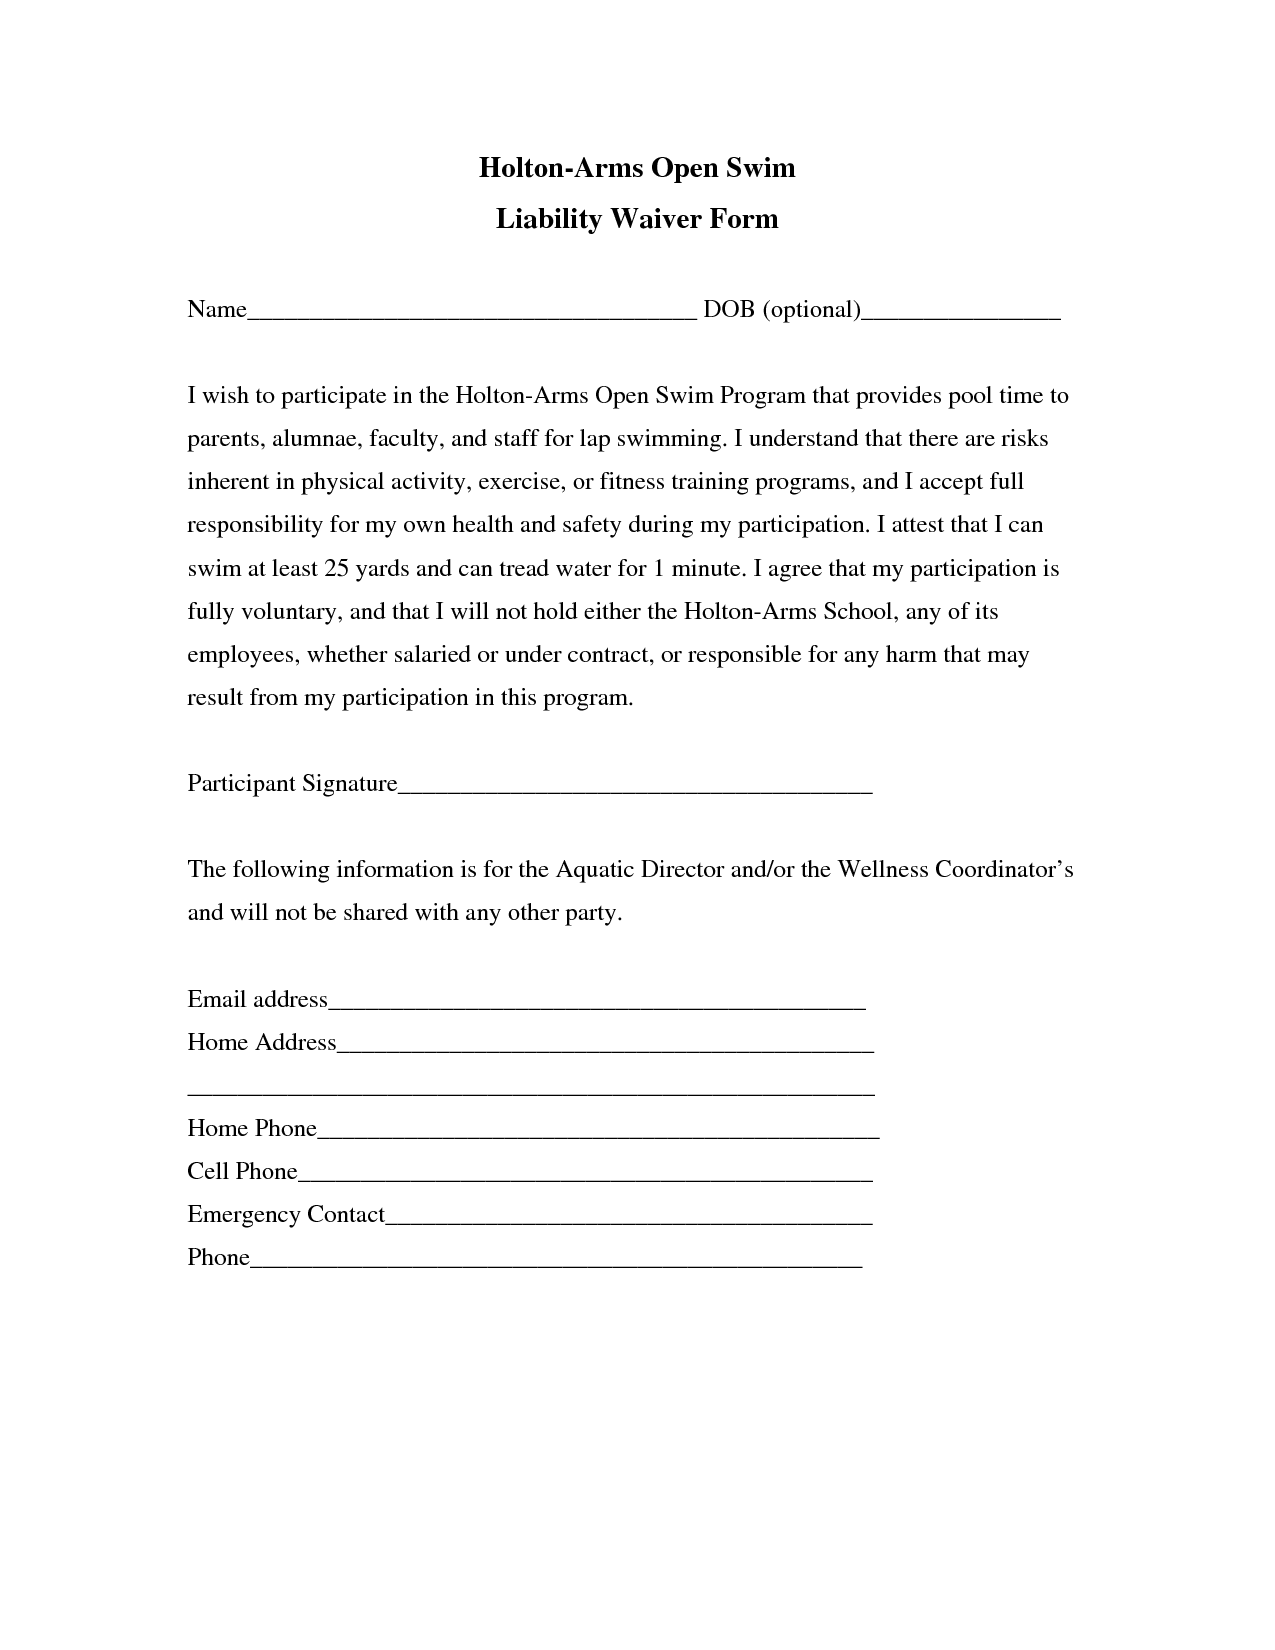 Awesome Liability Insurance: Liability Insurance Waiver Template   Liability Release  Form Template In Letter Of Release Form